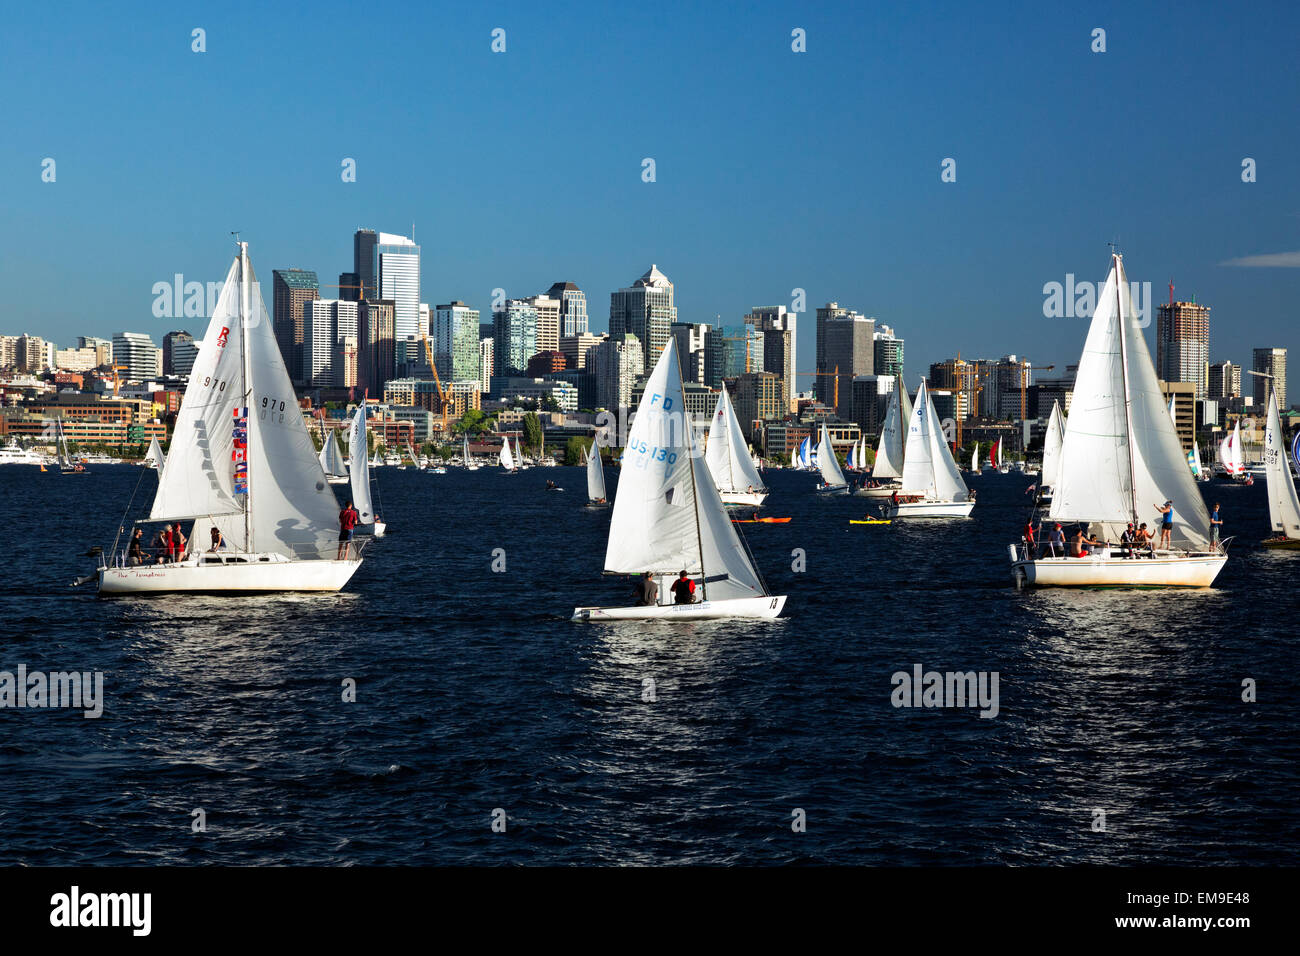 WA10387-00...WASHINGTON - The Tuesday Duck Dodge in Seattle makes for a busy evening on Lake Union. (No MR). - Stock Image